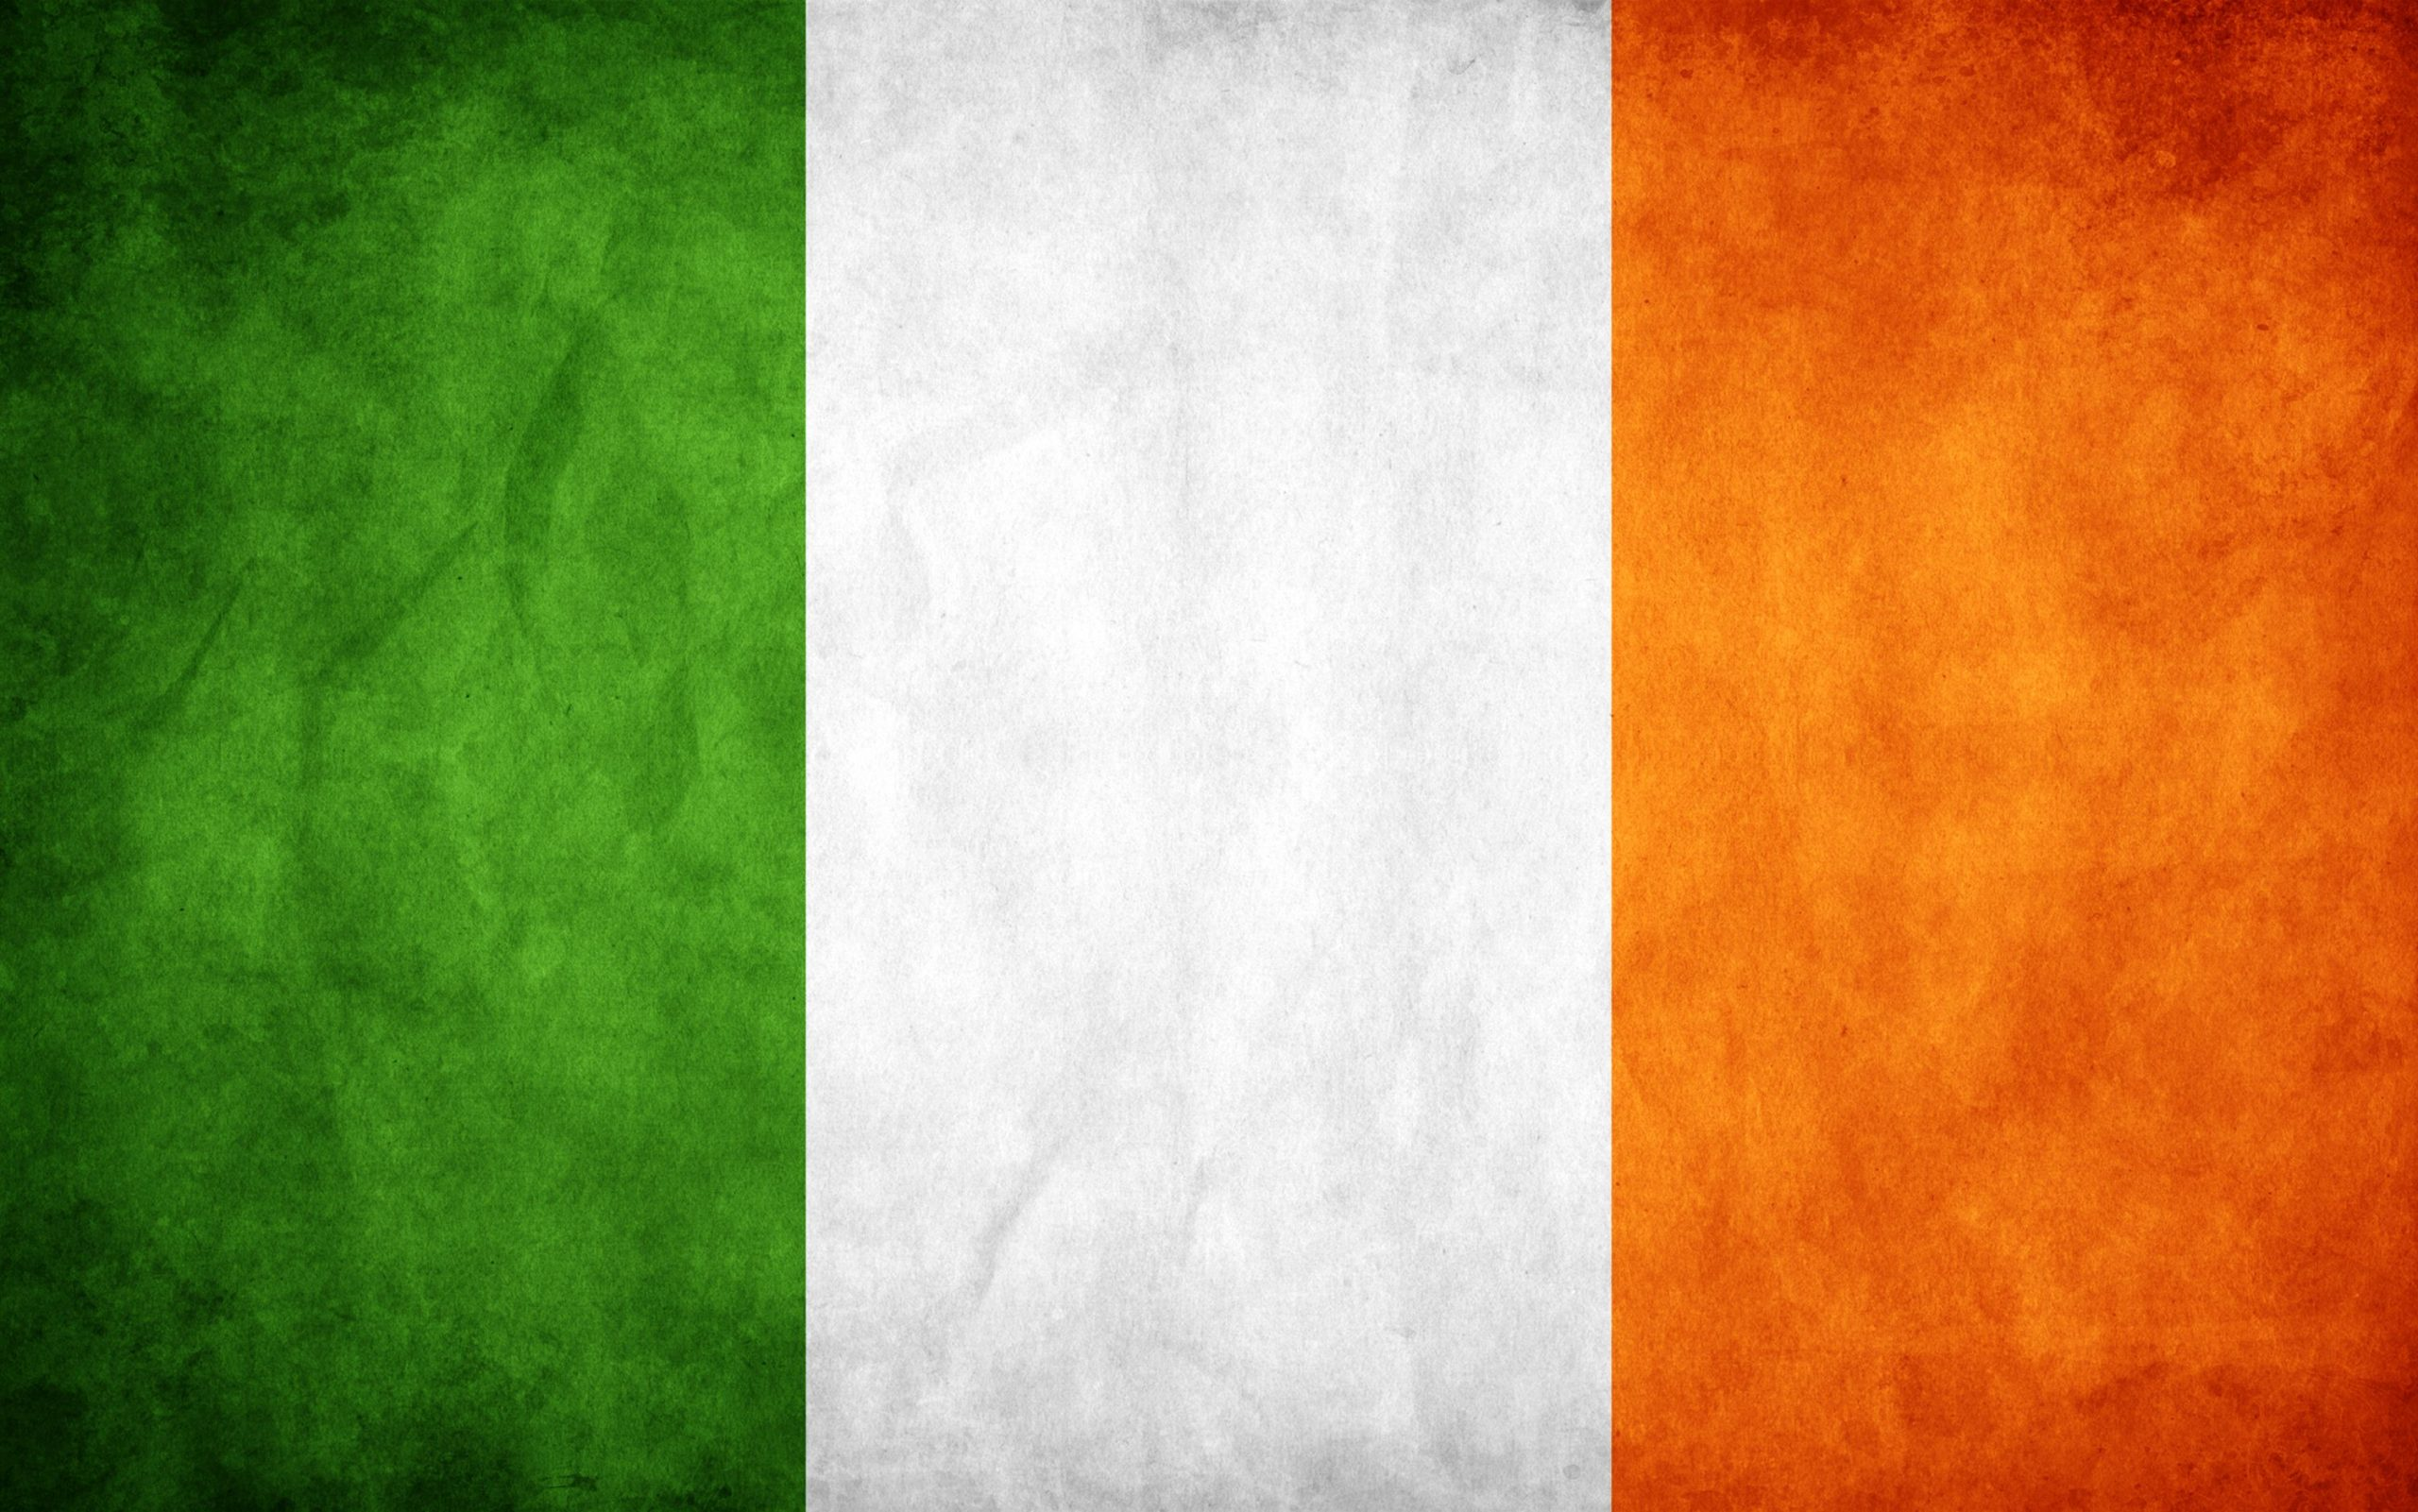 fun facts about ireland